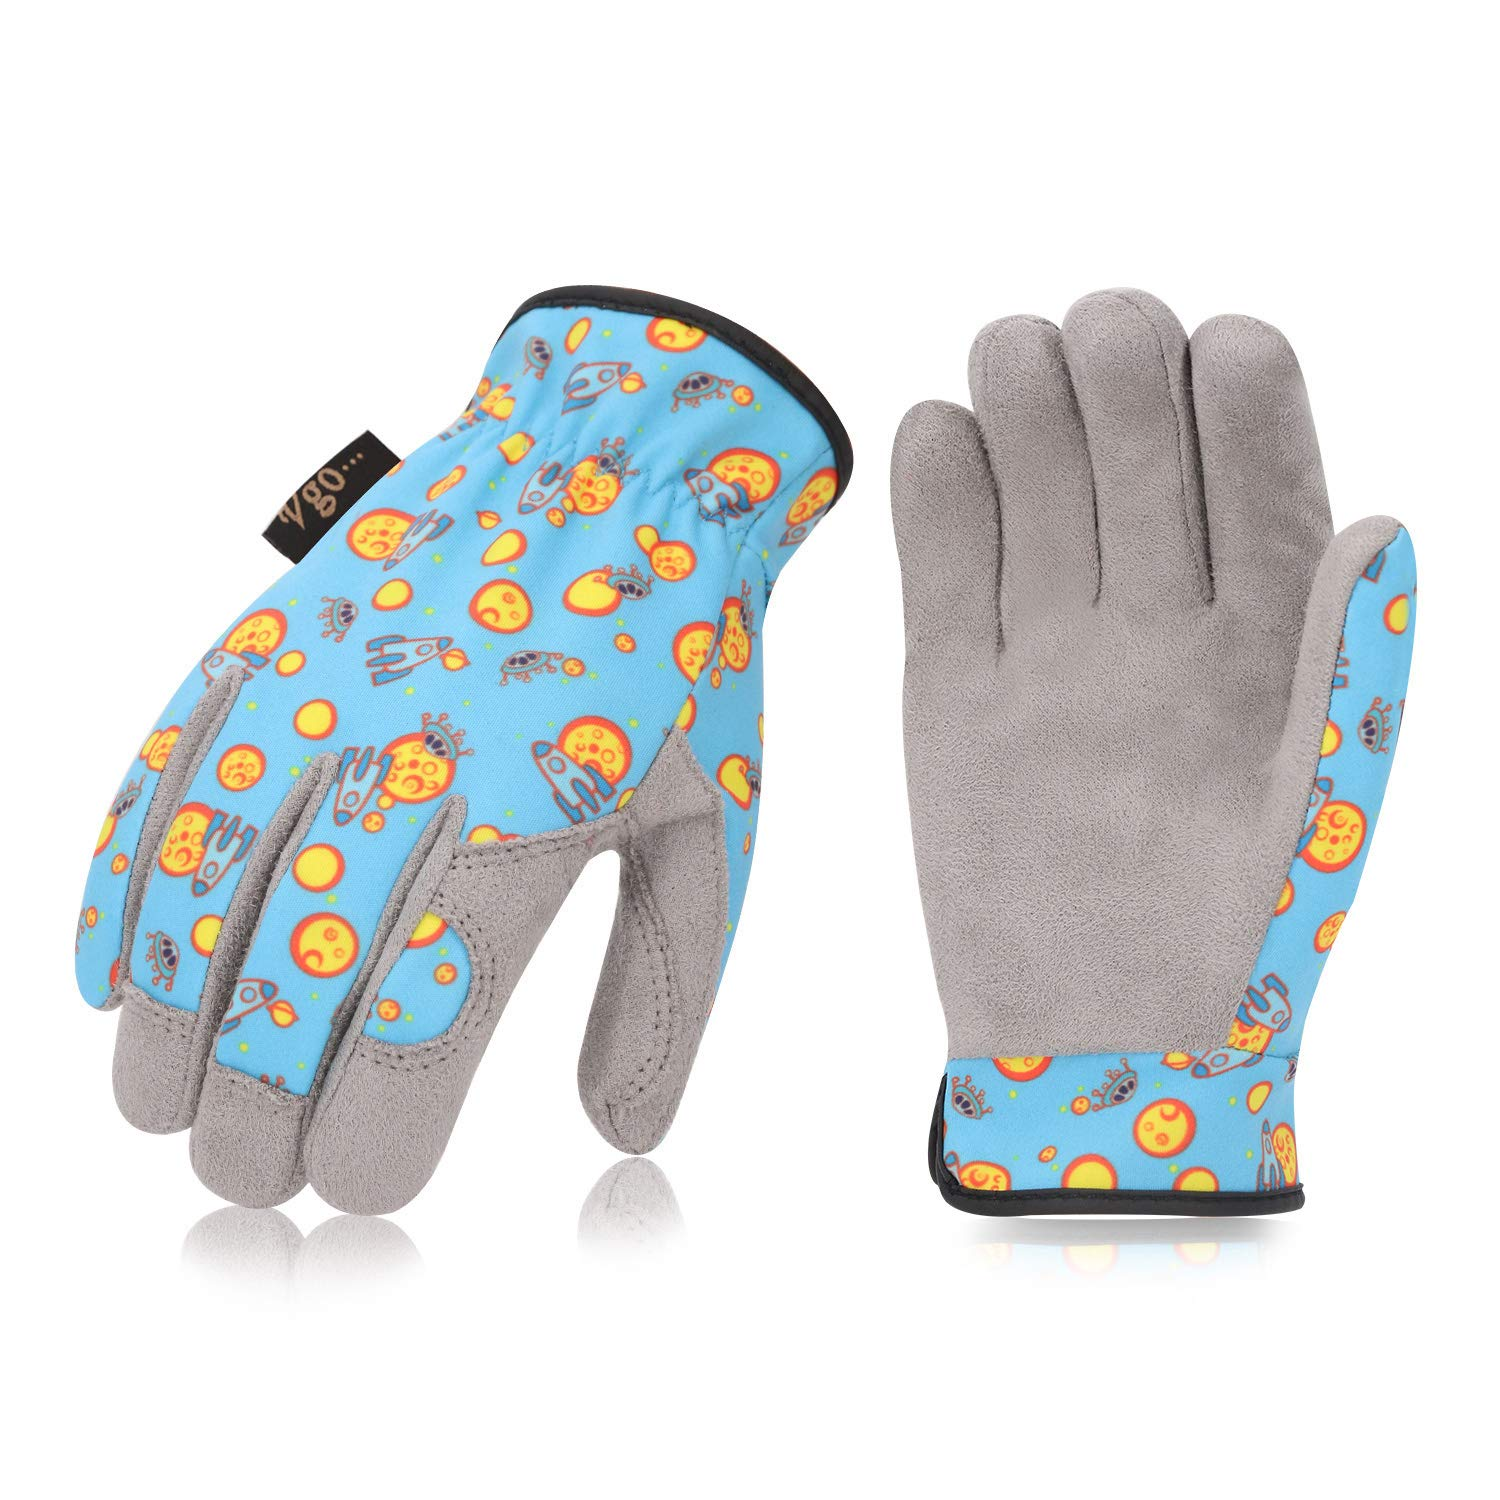 Vgo 2Pairs 4-5 Years Old Kids Gardening,Lawning,Working DIY Gloves(Size KID:S,2 Color,KID-MF7362)